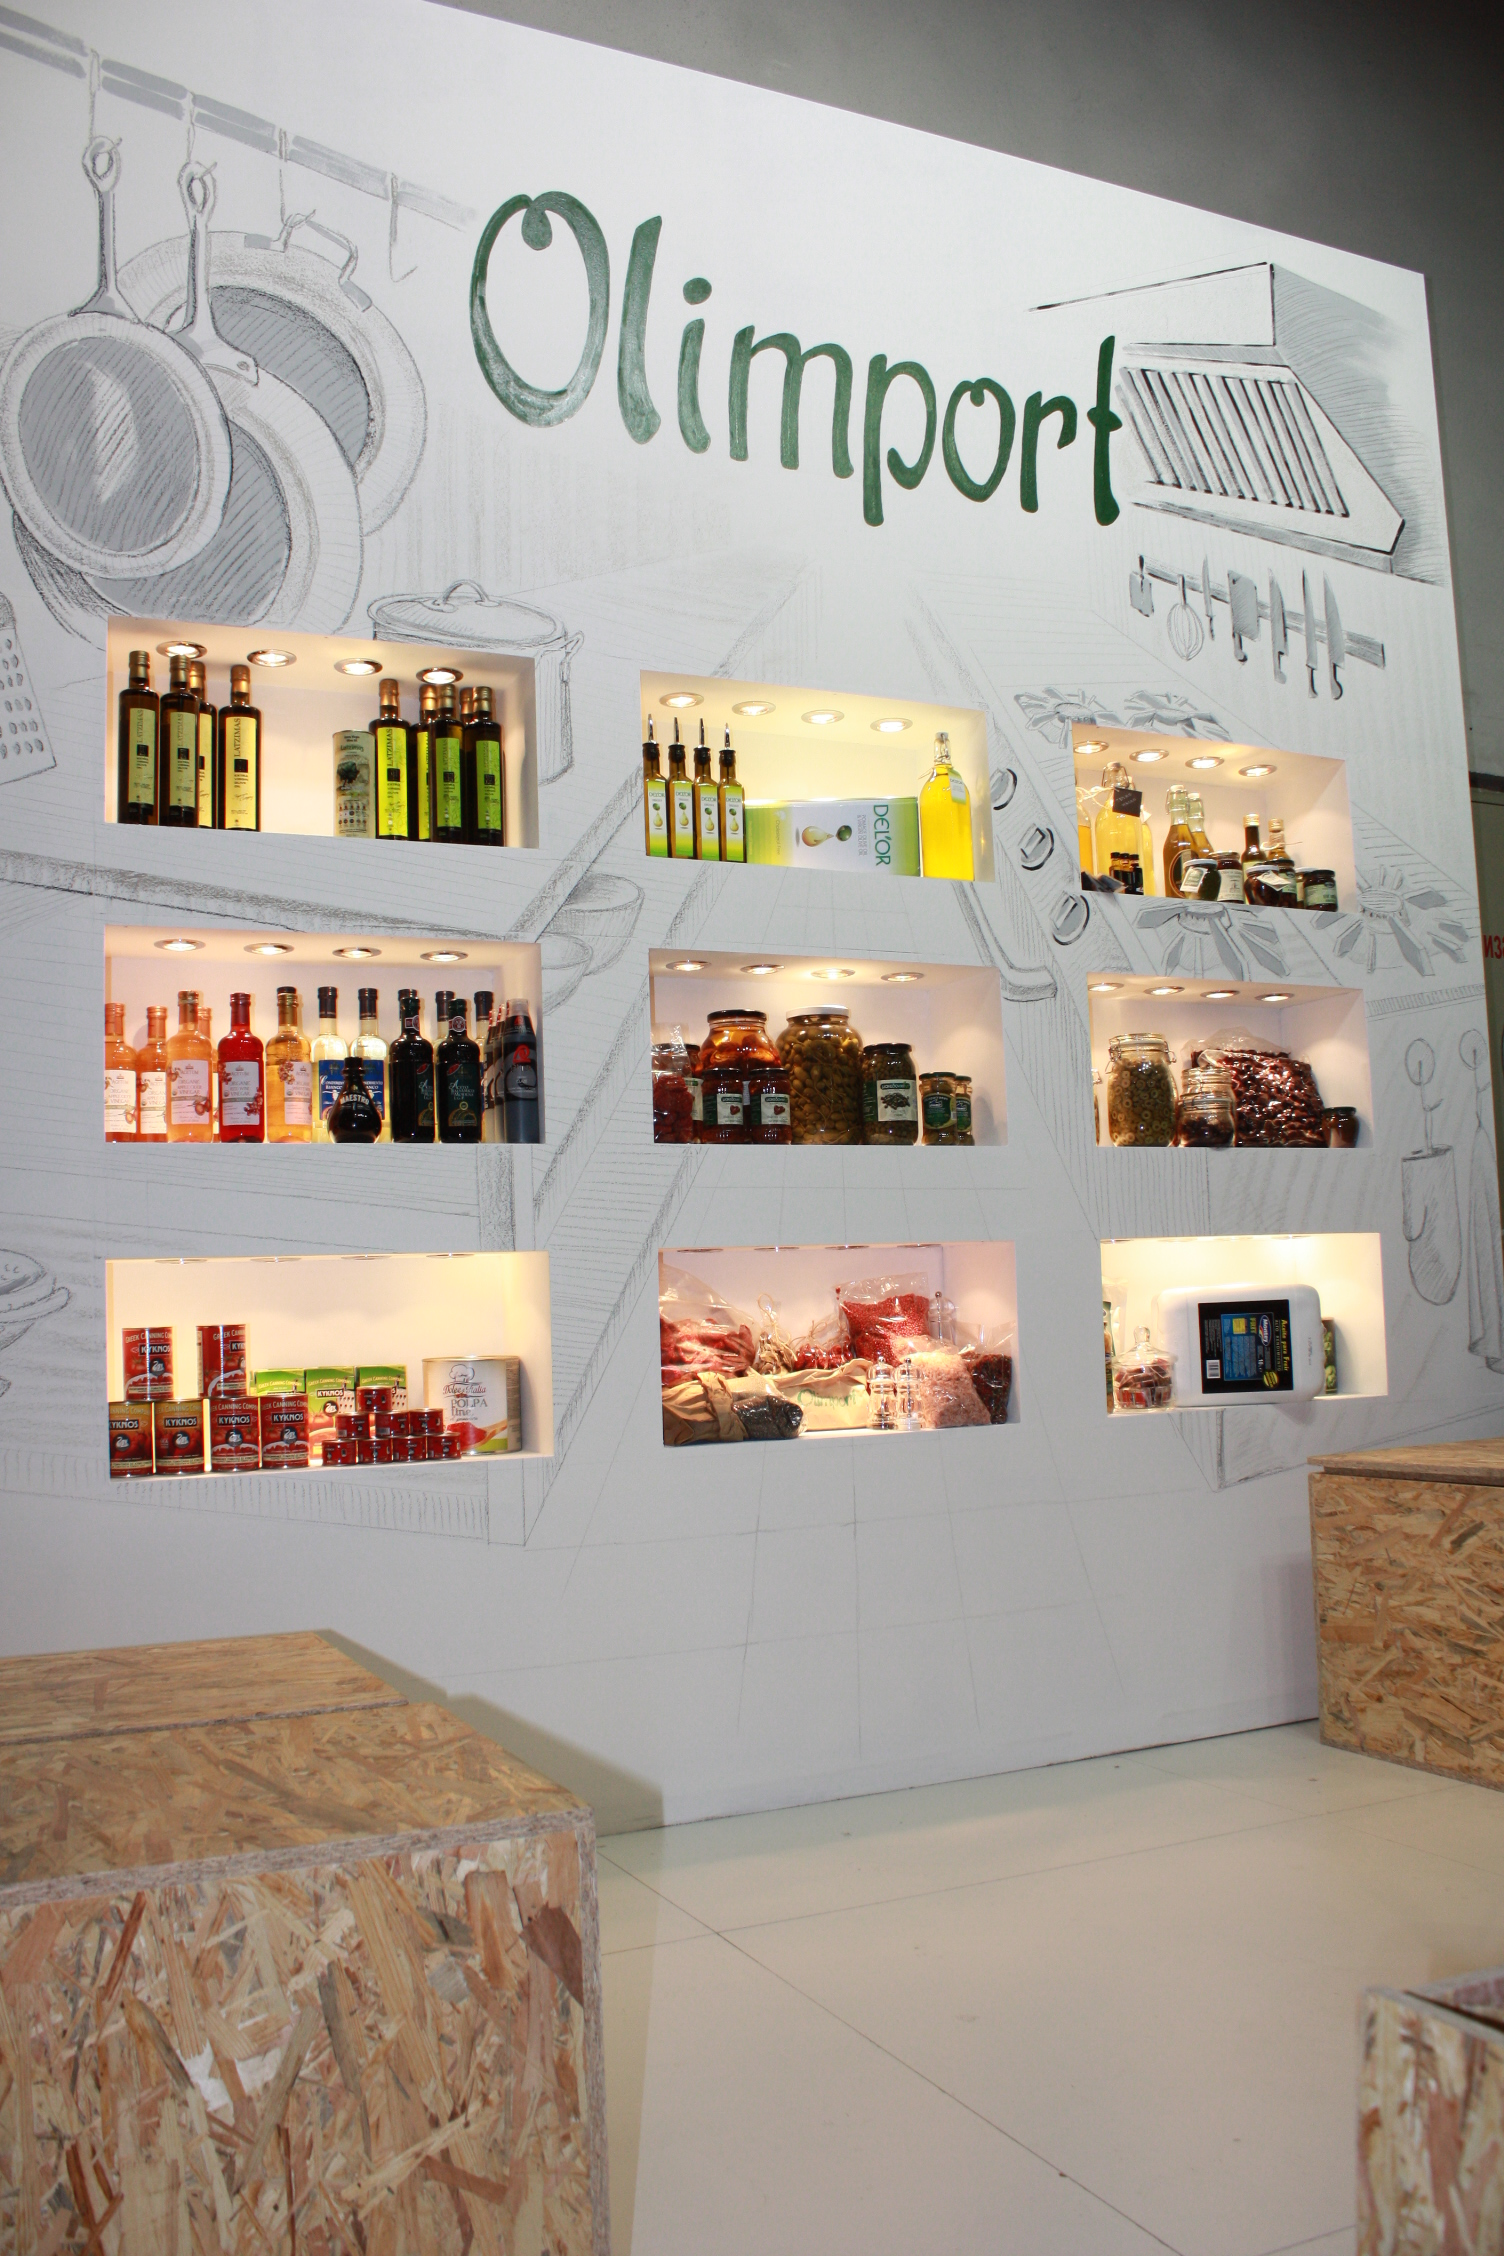 You are currently viewing INTERFOOD & DRINKS 2015